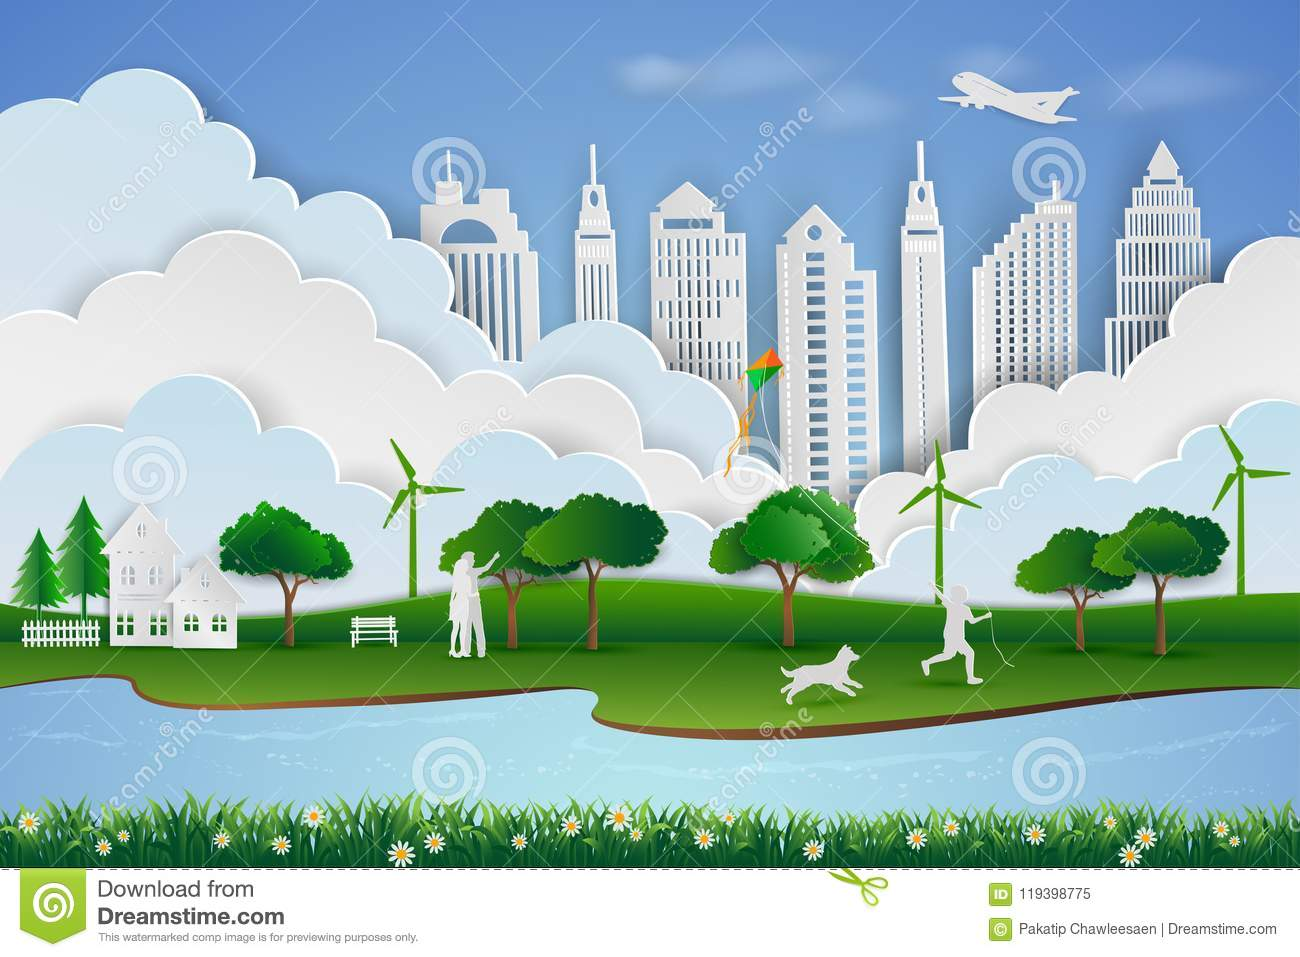 Save The Environment And Energy Concept Paper Art Design Of